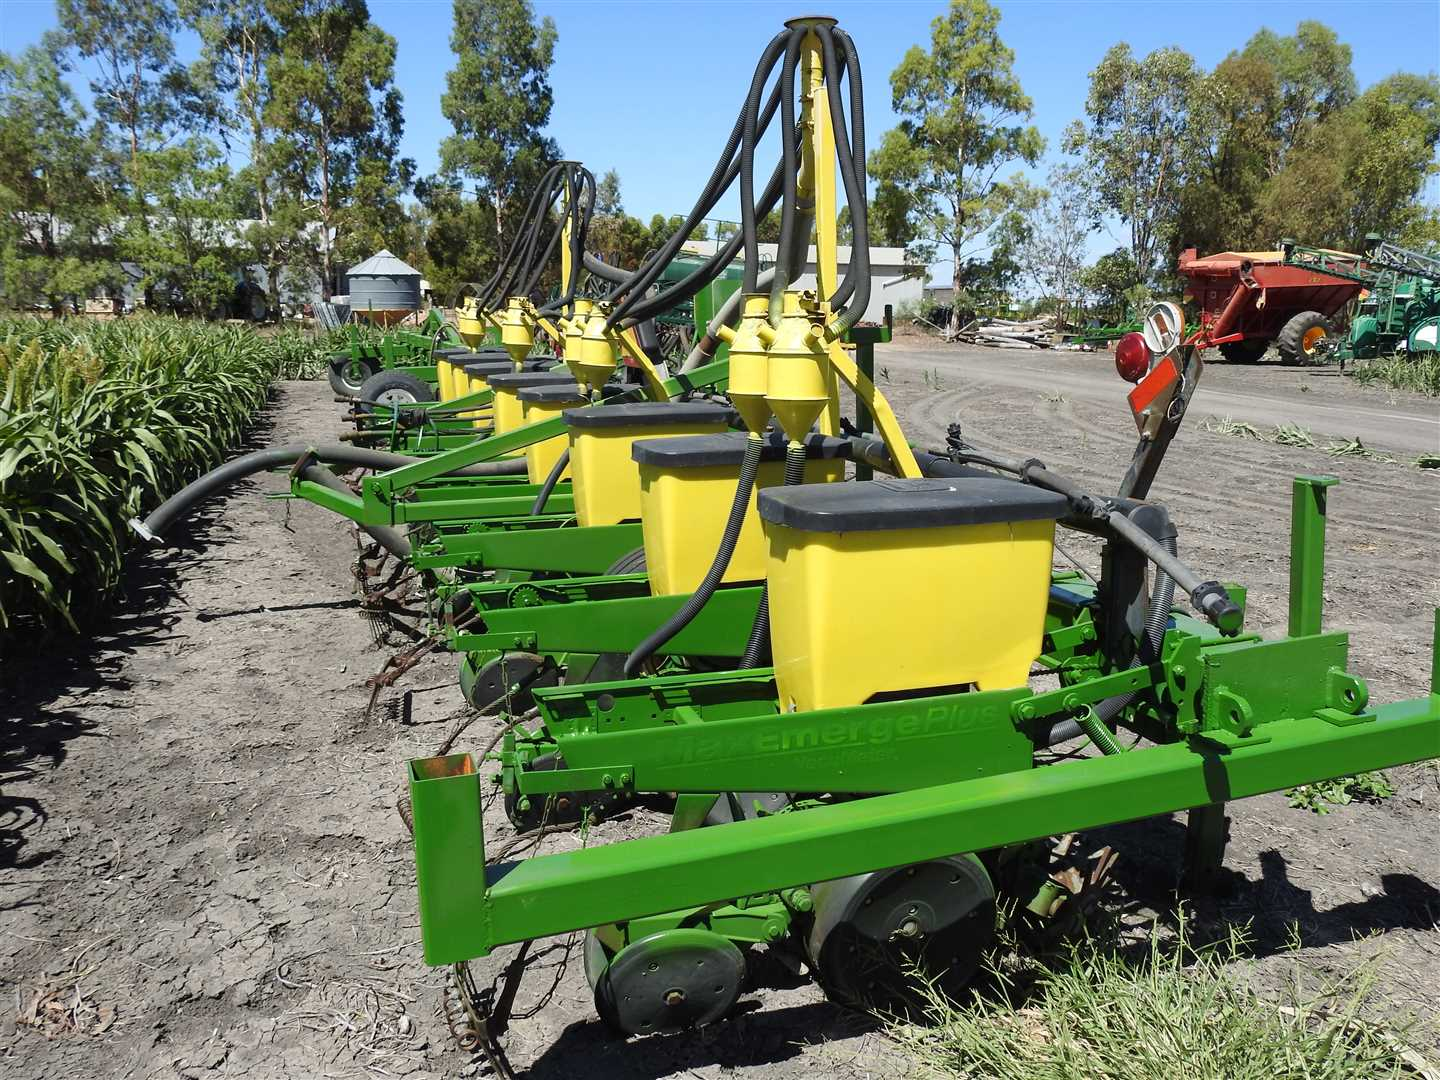 JD Maximerge 8 M planter, with liquid injection, 8 row trashwhippers and solid fertiliser tubes.